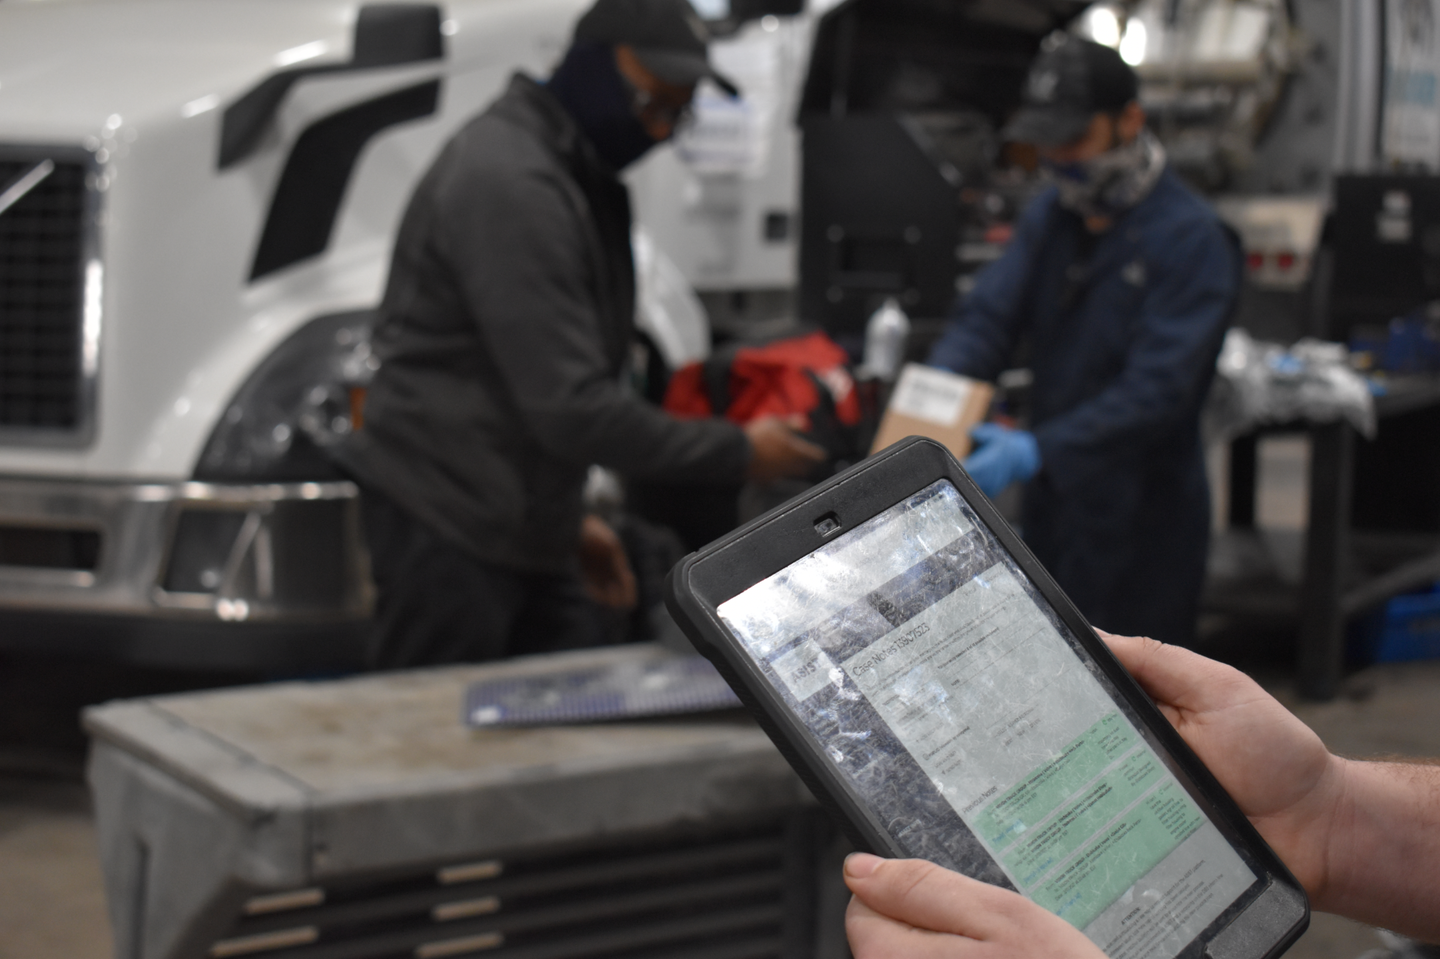 Technicians can order parts on the iPad, enter notes and photos, and communicate with other technicians who may have worked on the same vehicle.